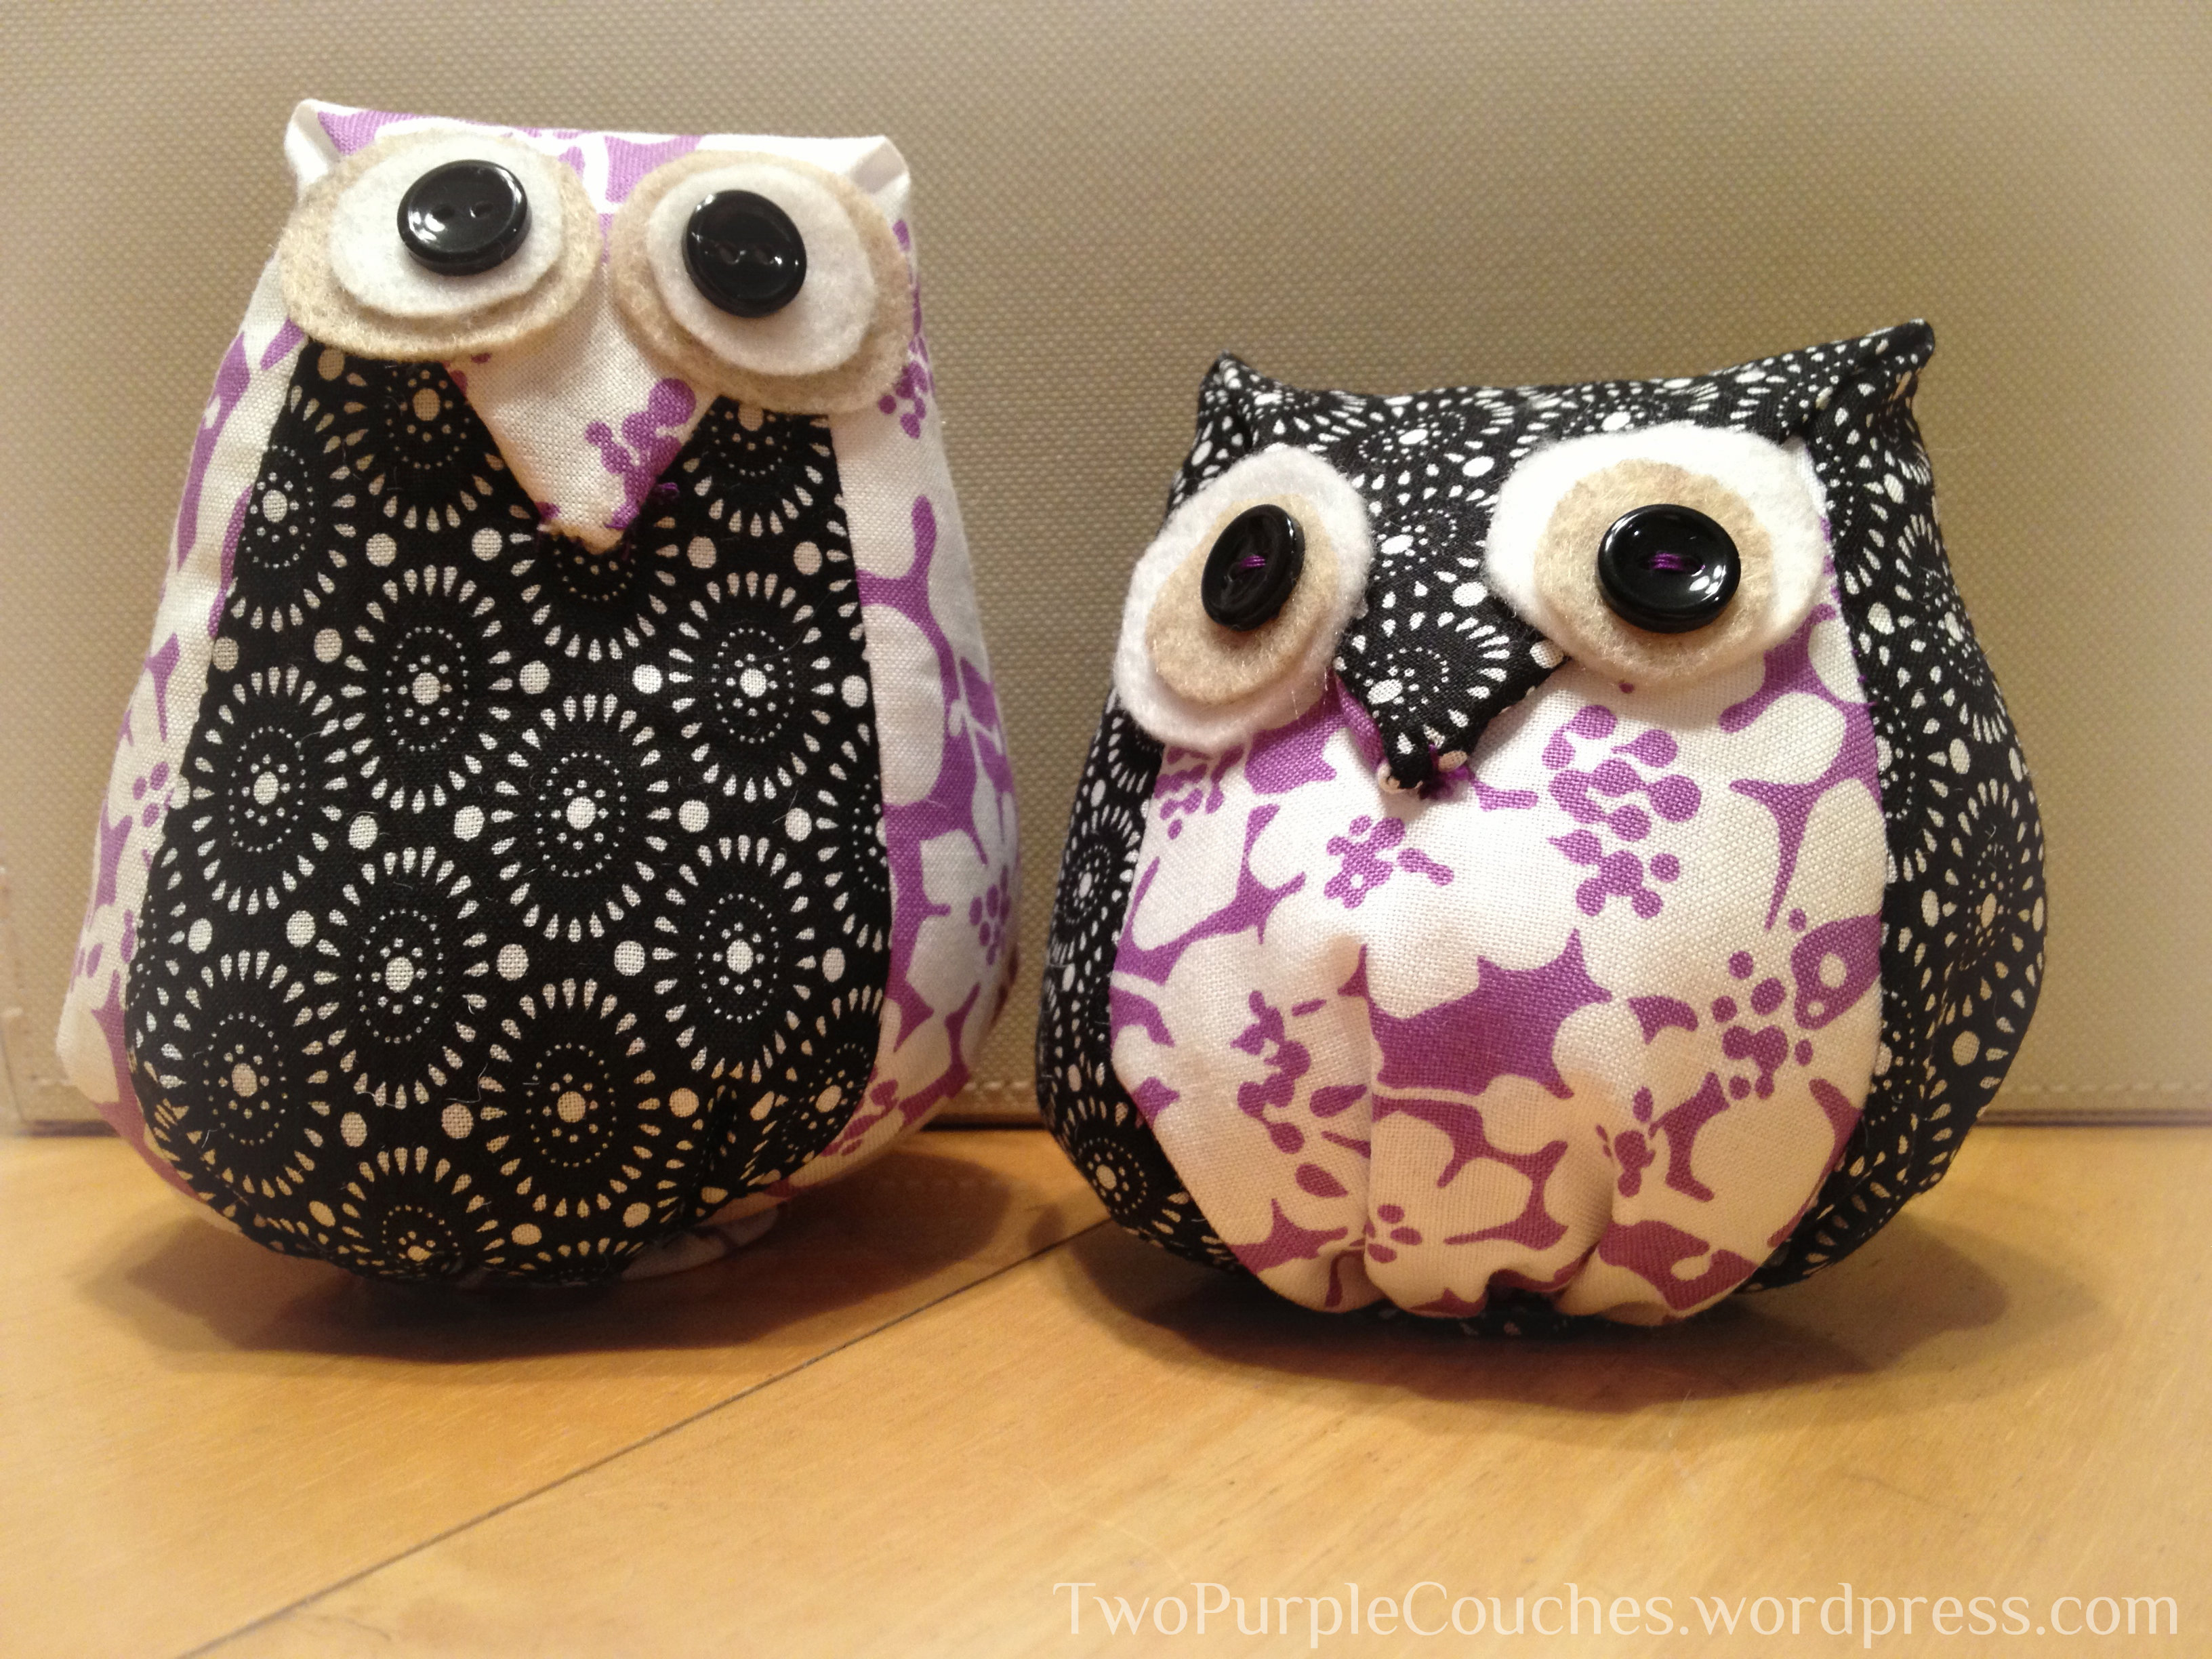 A Hoot of a Handmade Gift - two purple couches